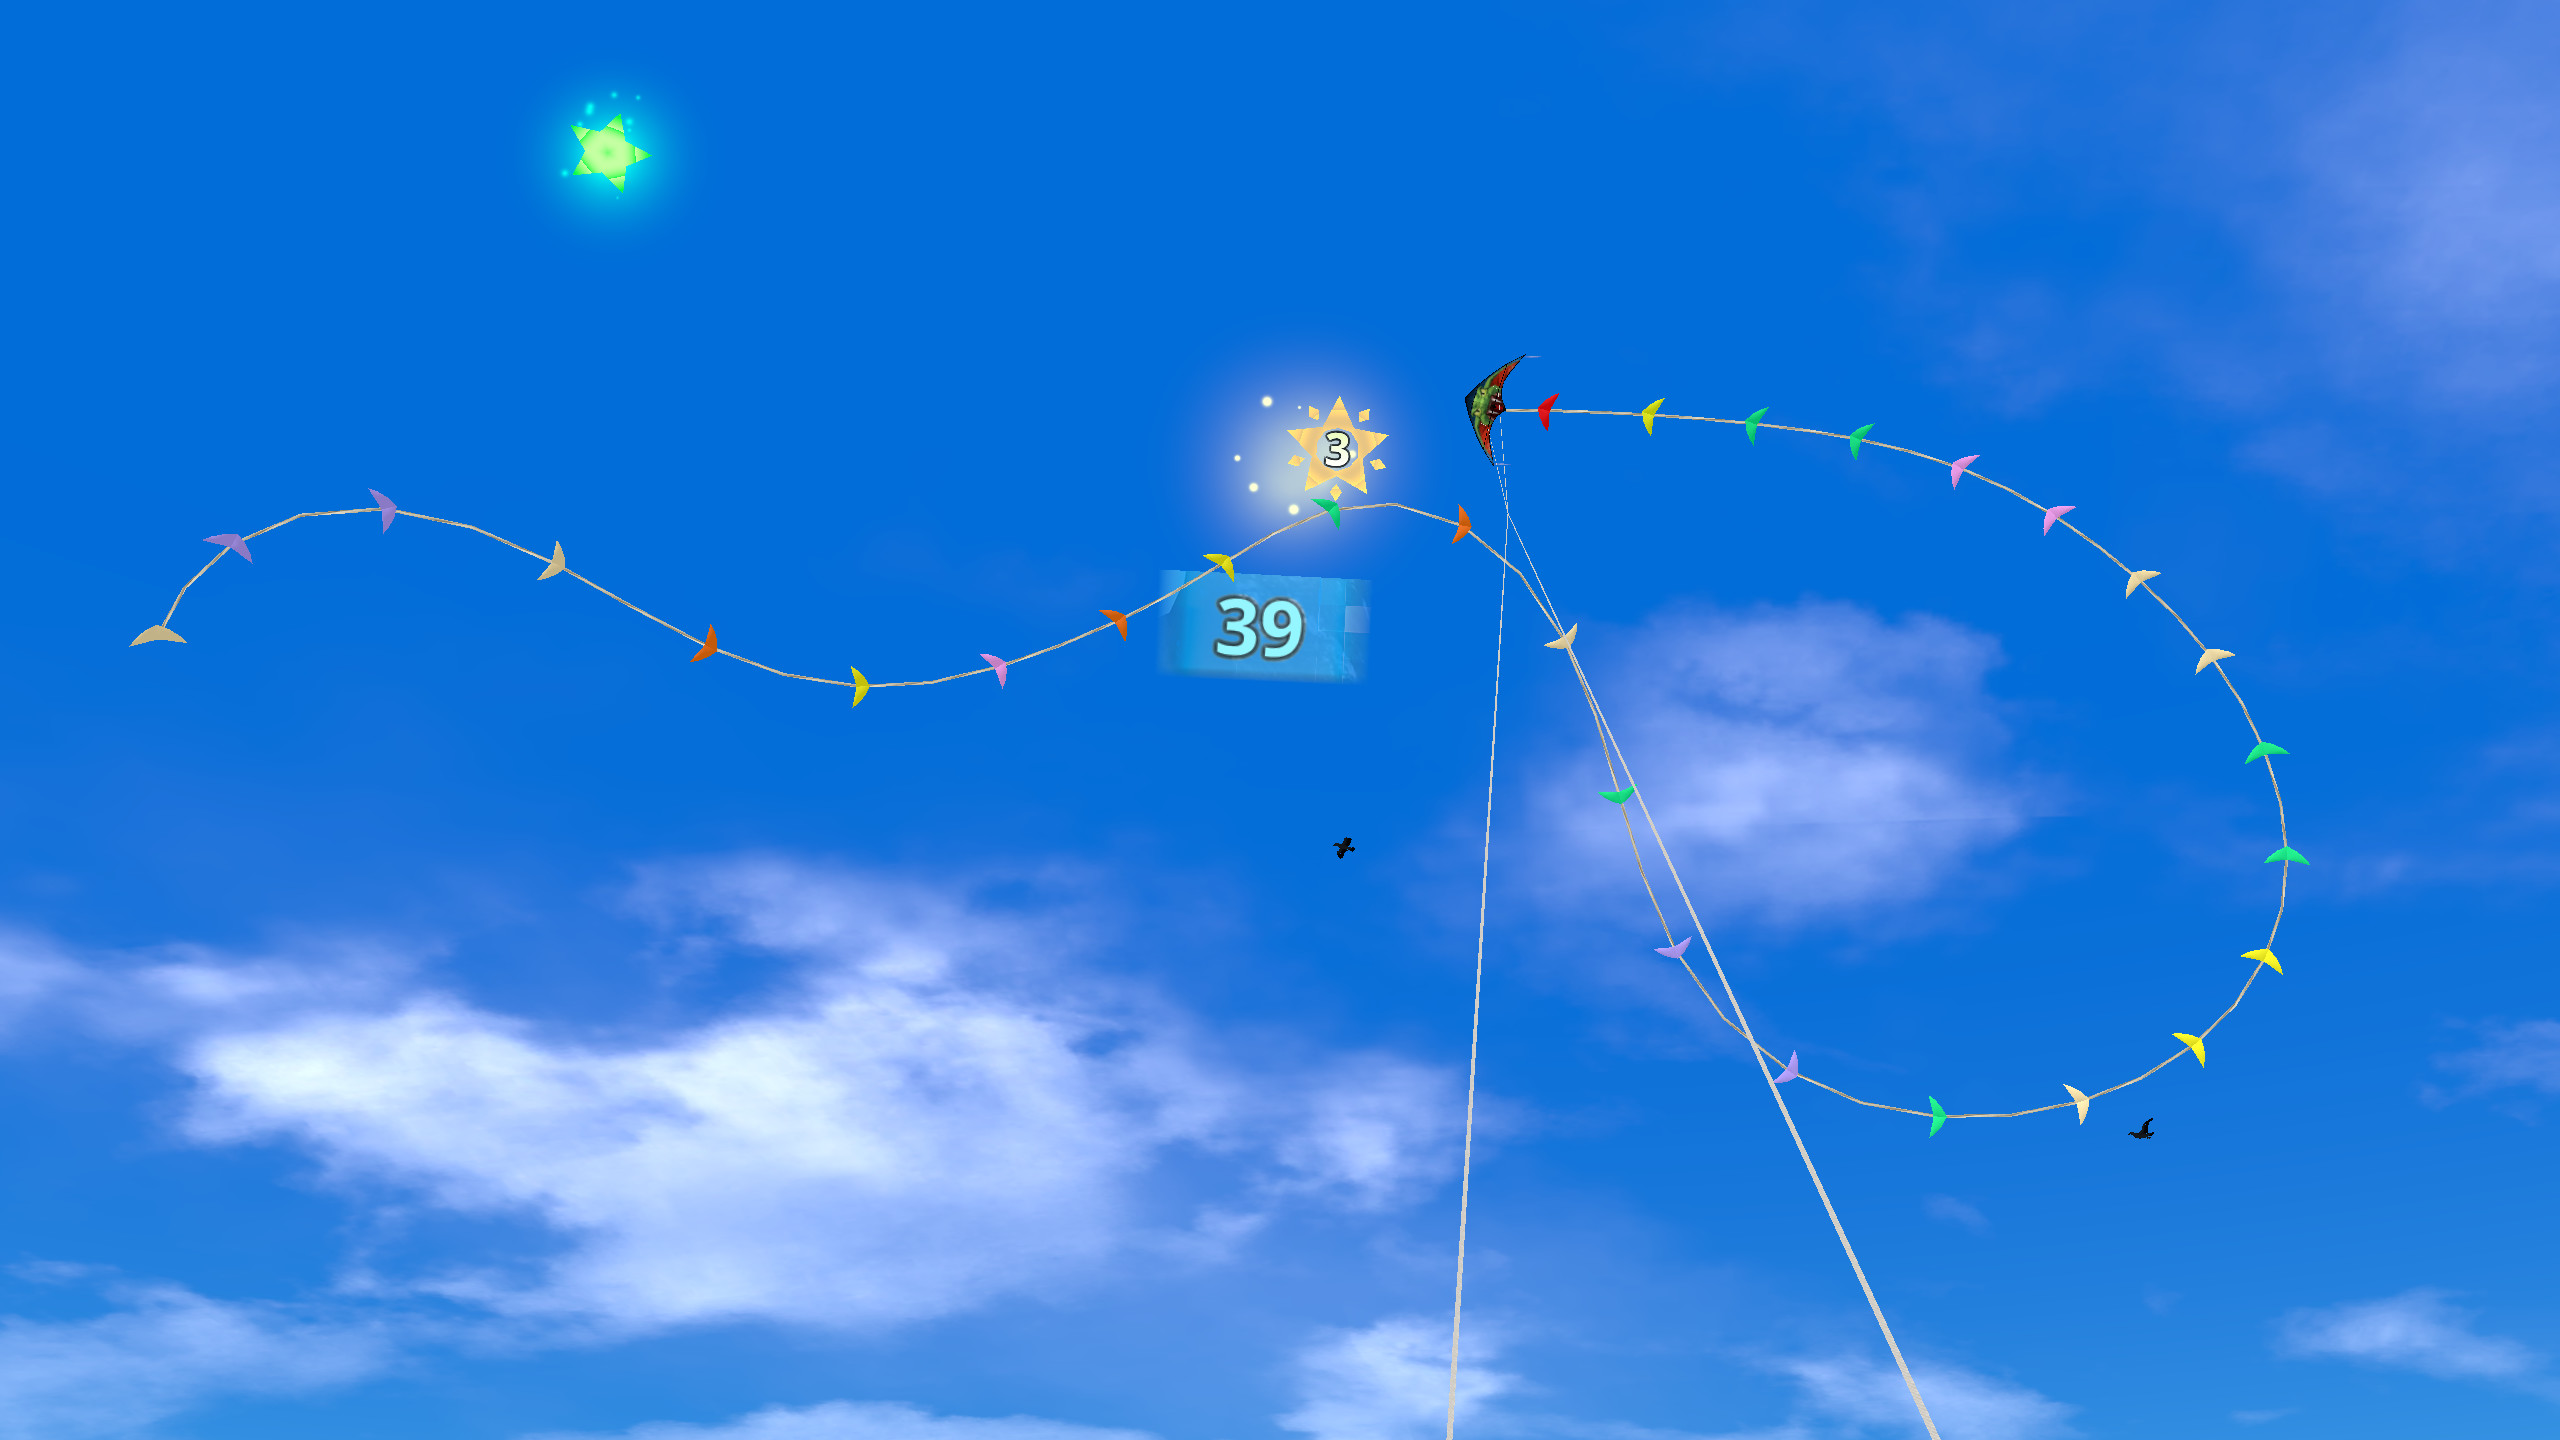 Stunt Kite Masters VR screenshot